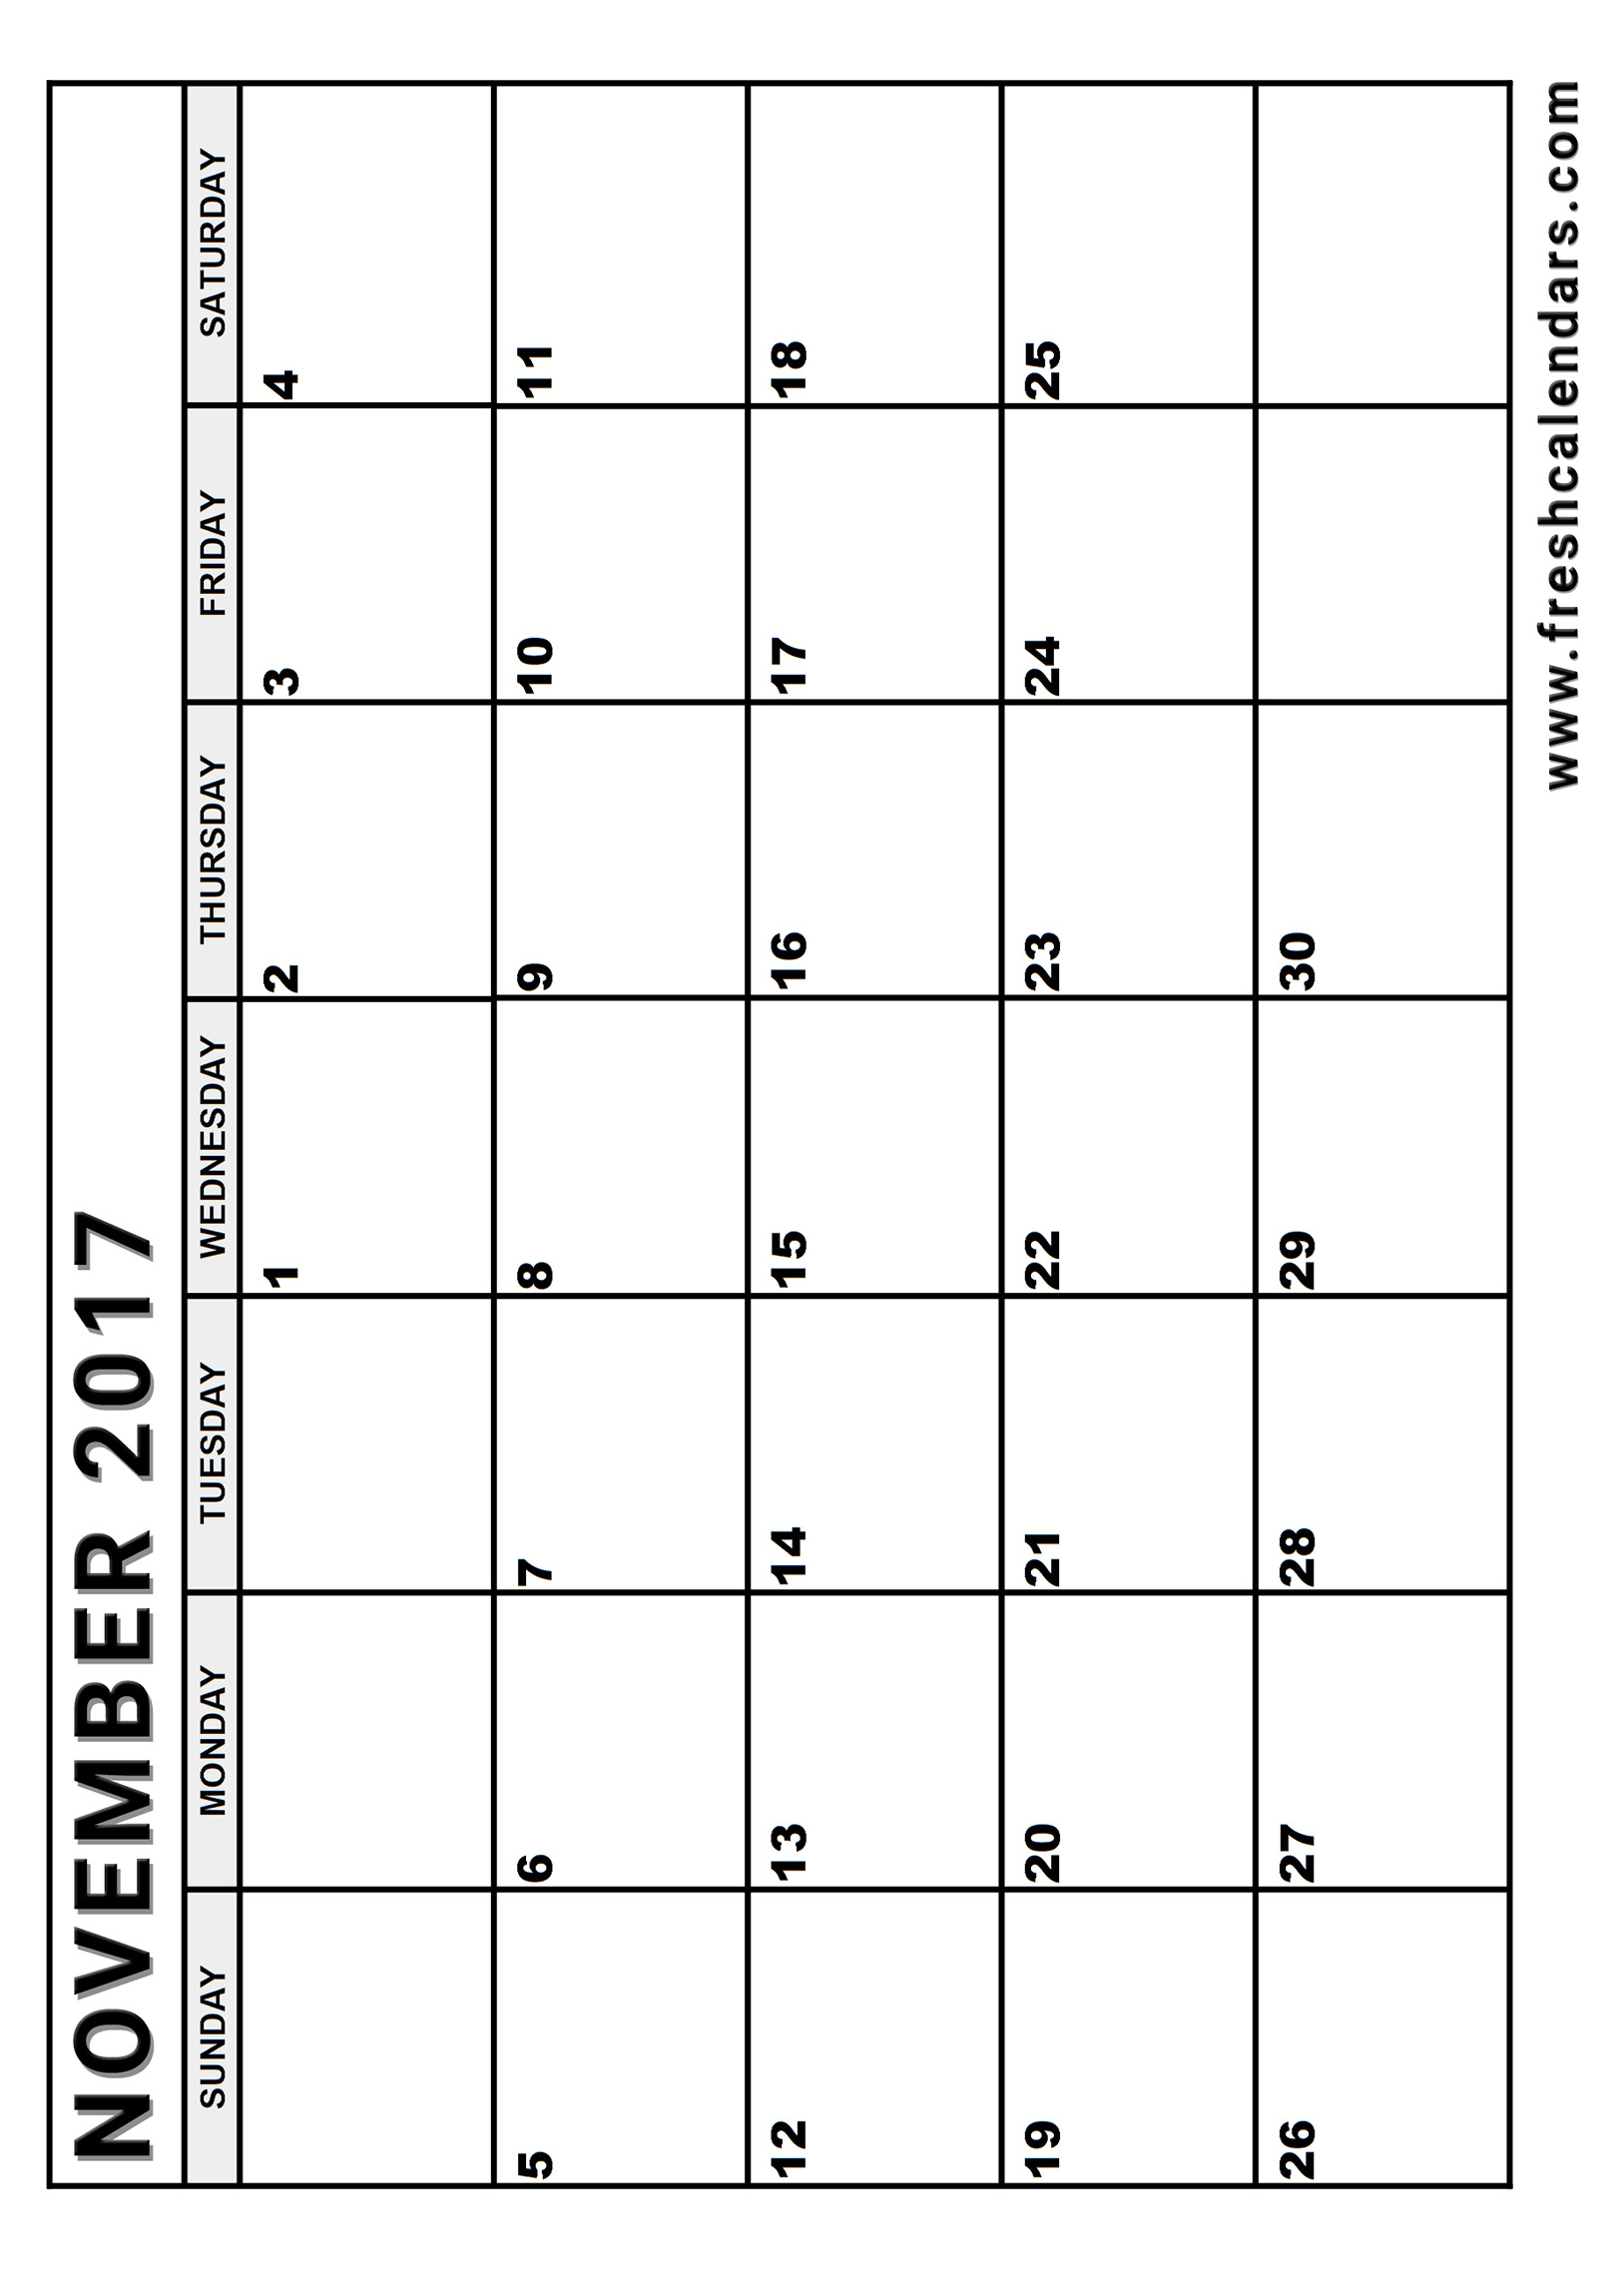 picture about Free Printable Nov Calendar named November 2017 Calendar Printable Templates